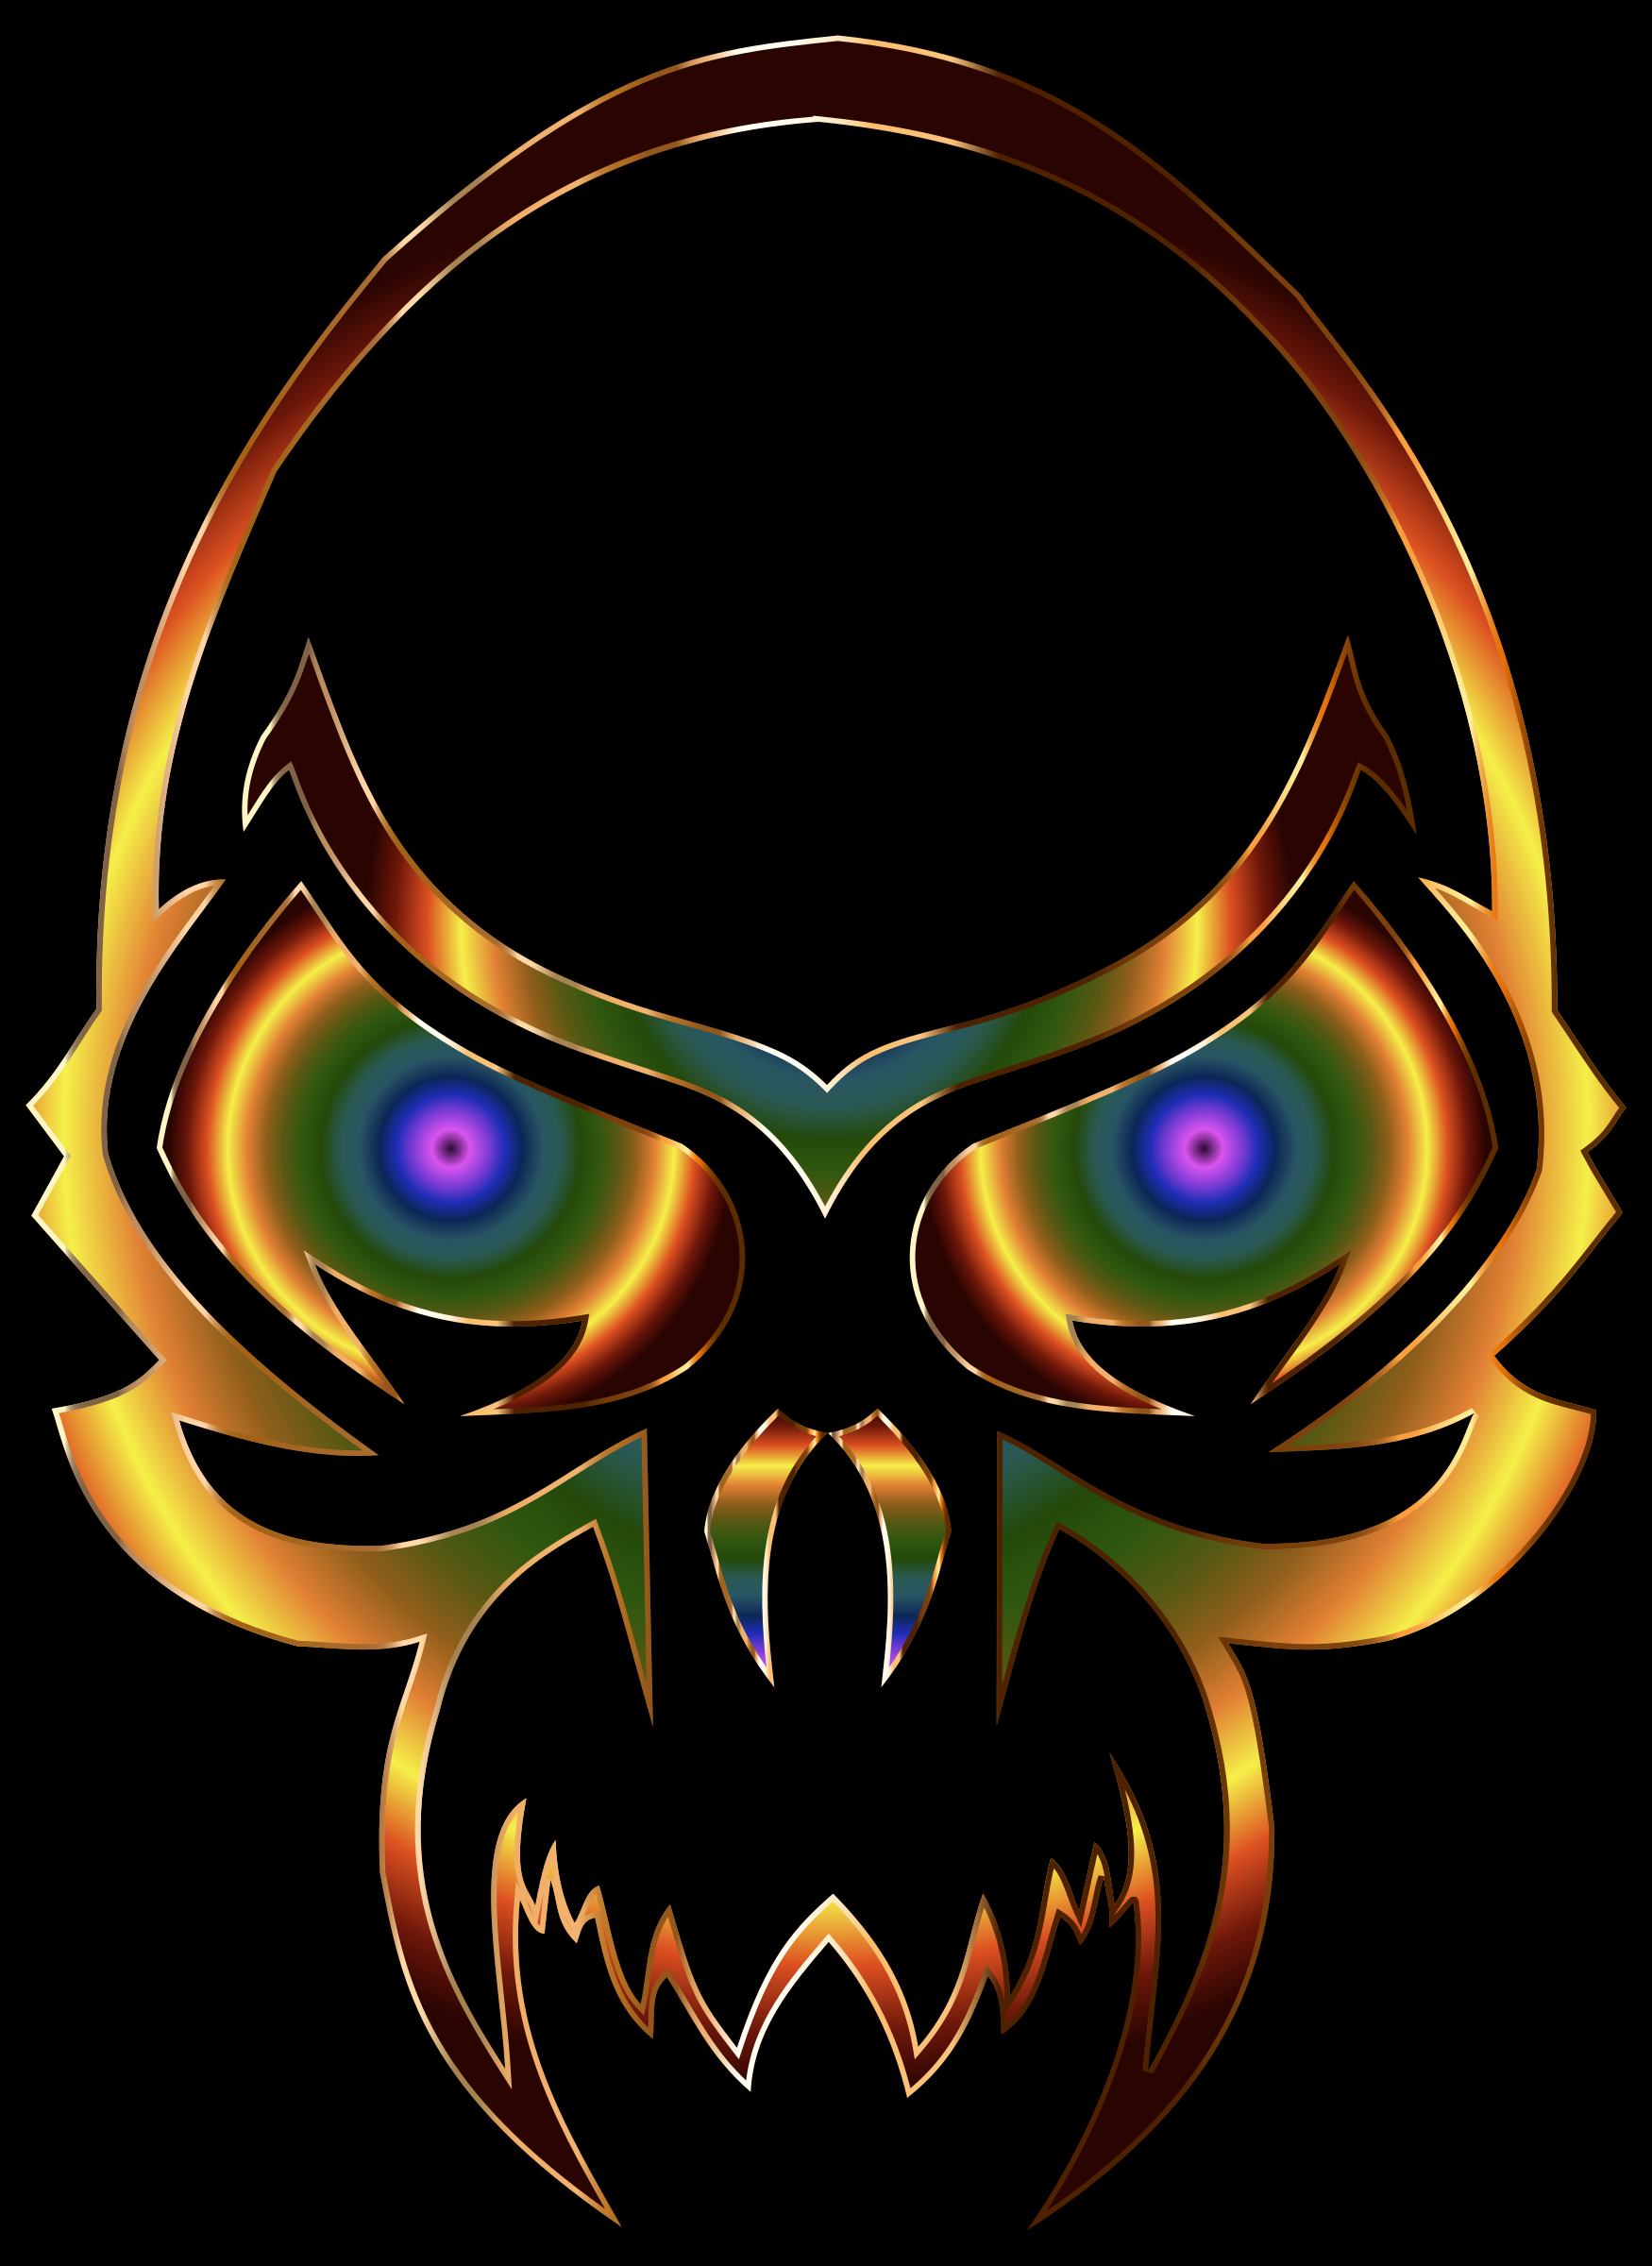 Colorful Skull 2 With Black Background by GDJ